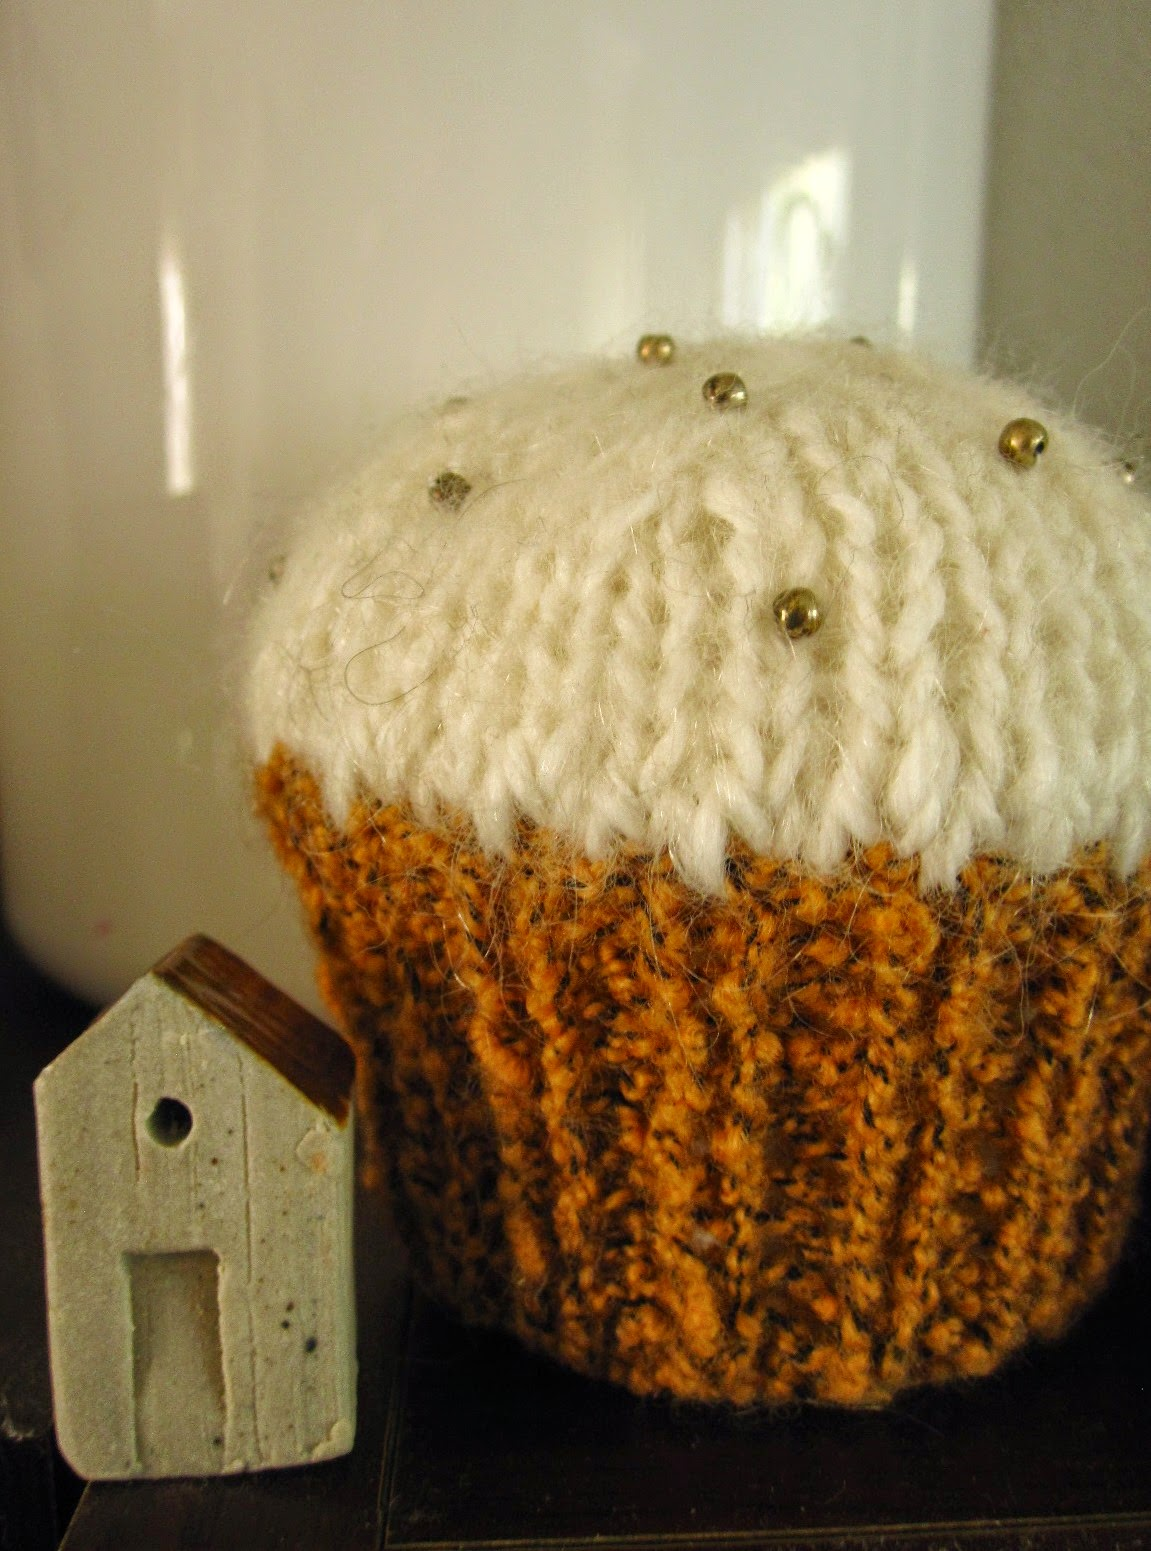 A small clay house displayed next to a full-sized knitted cupcake.